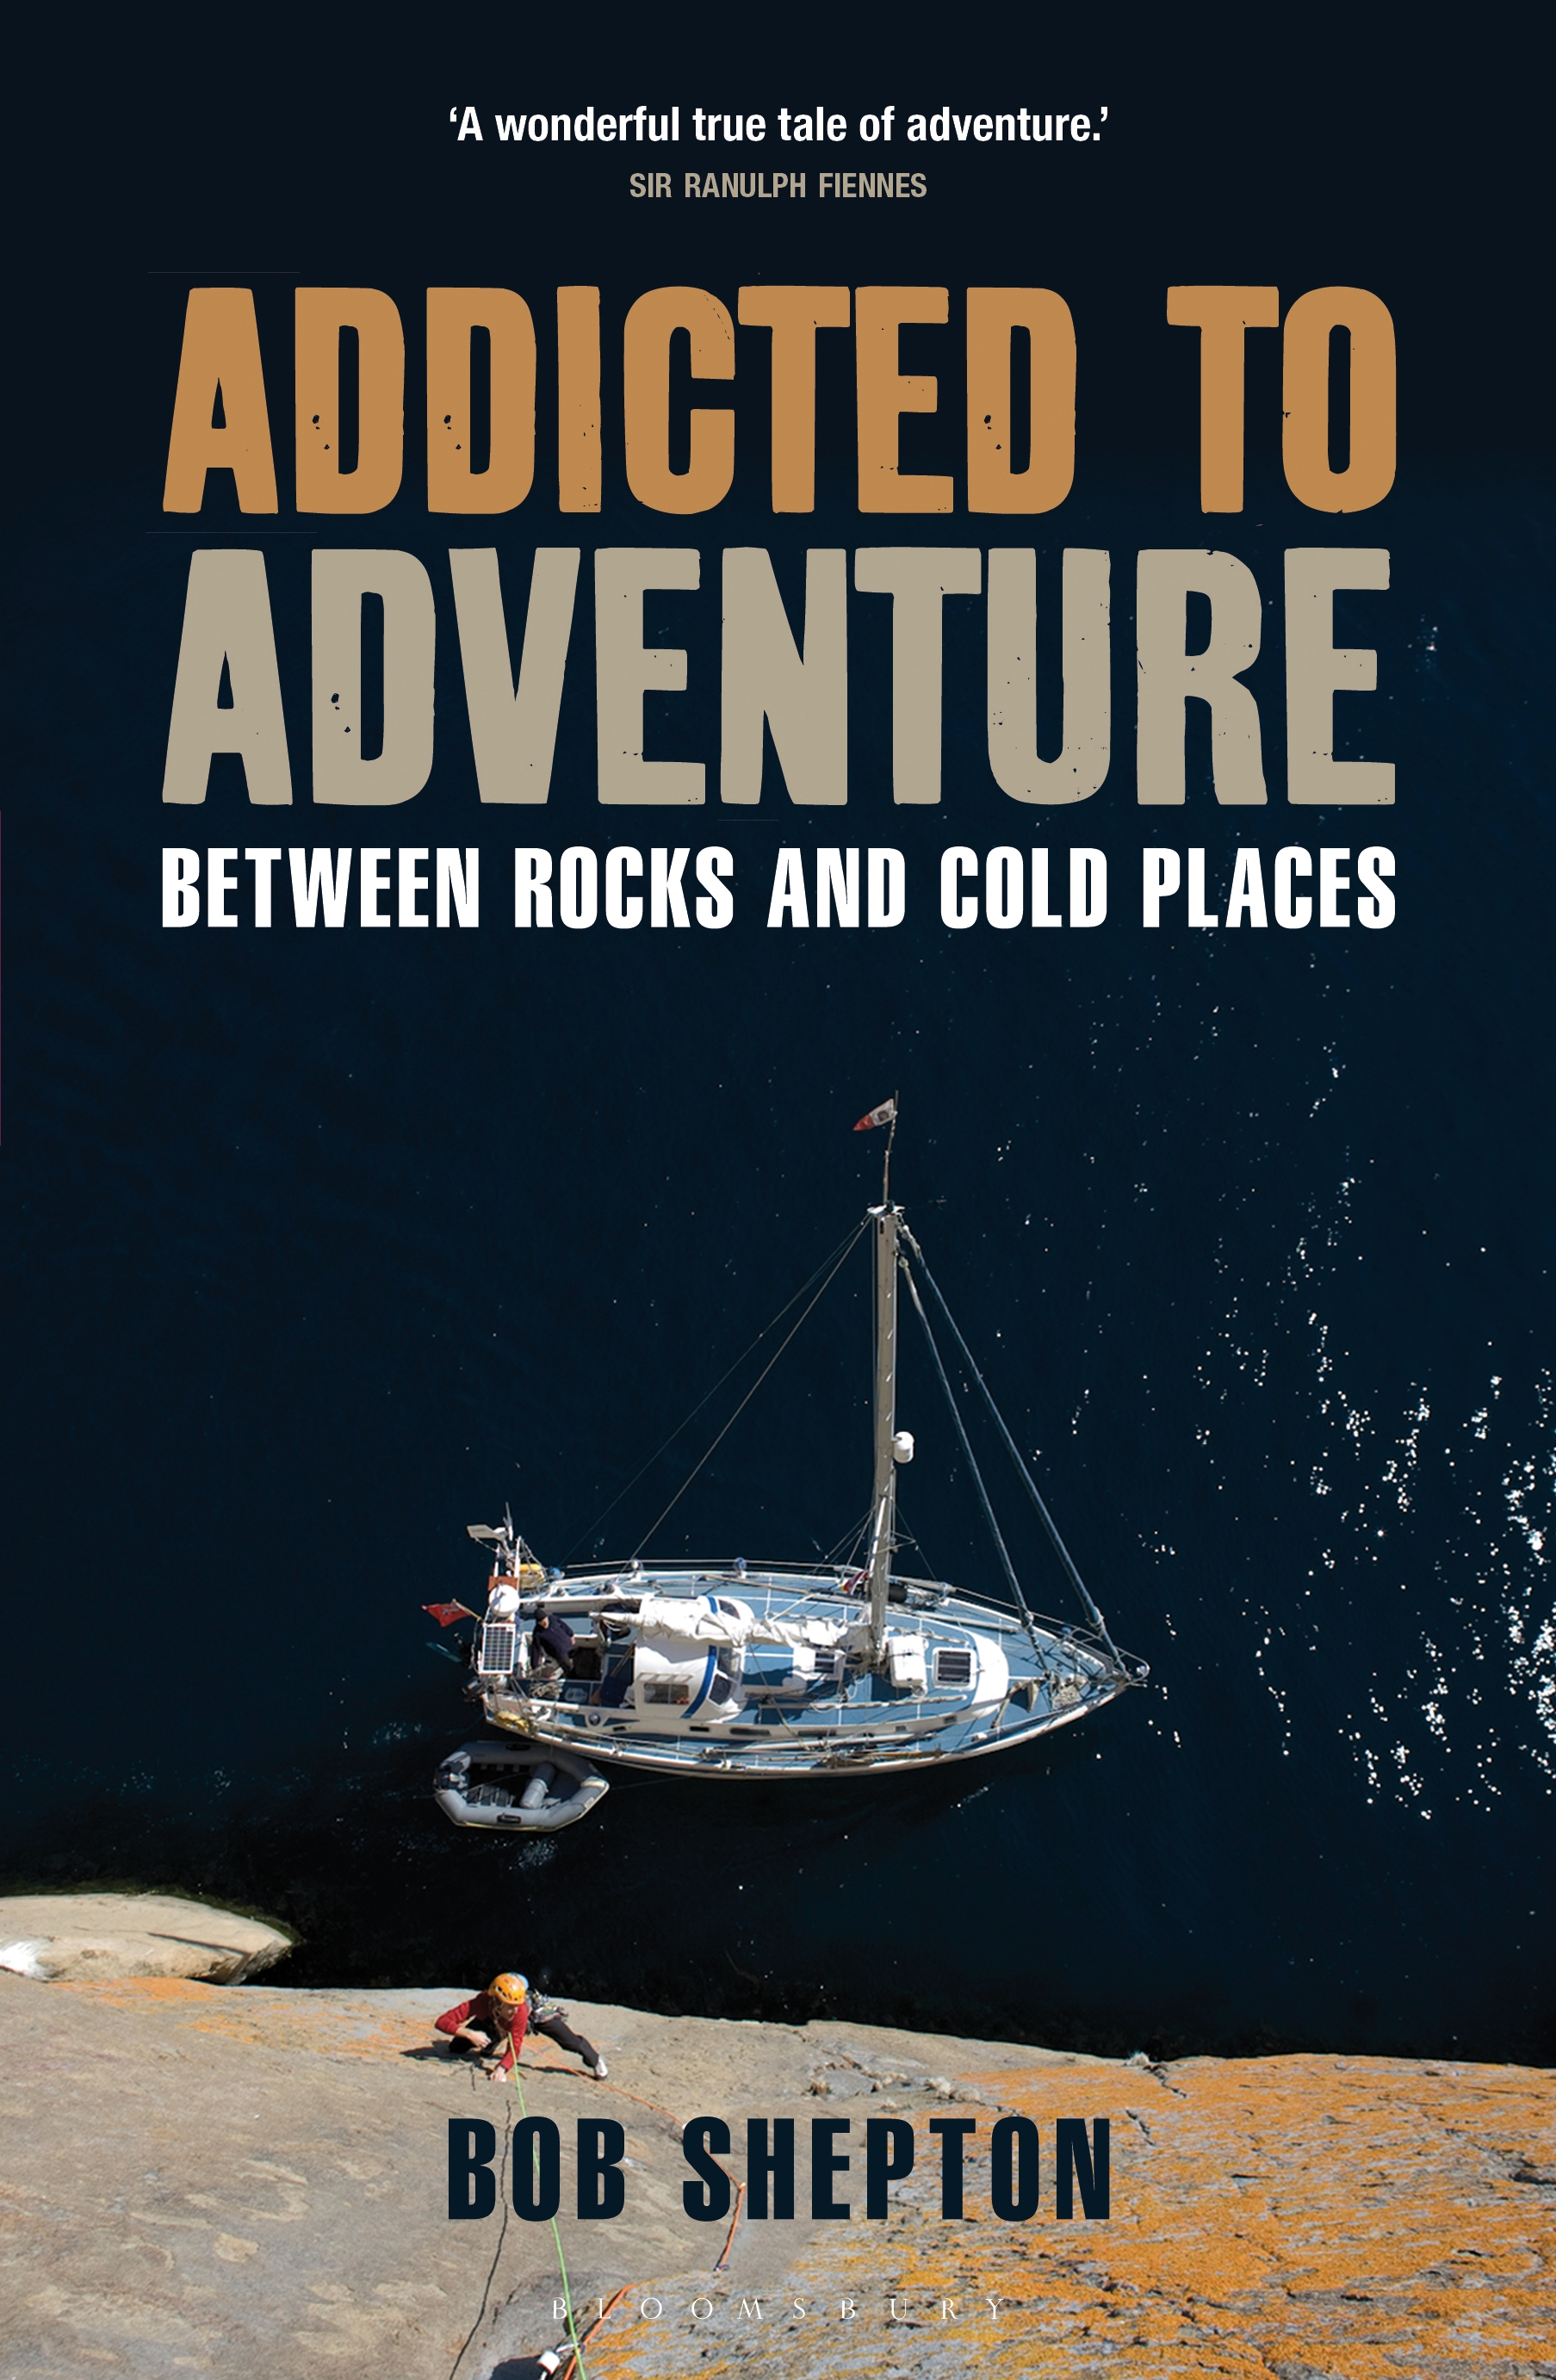 Addicted to Adventure Between rocks and cold places